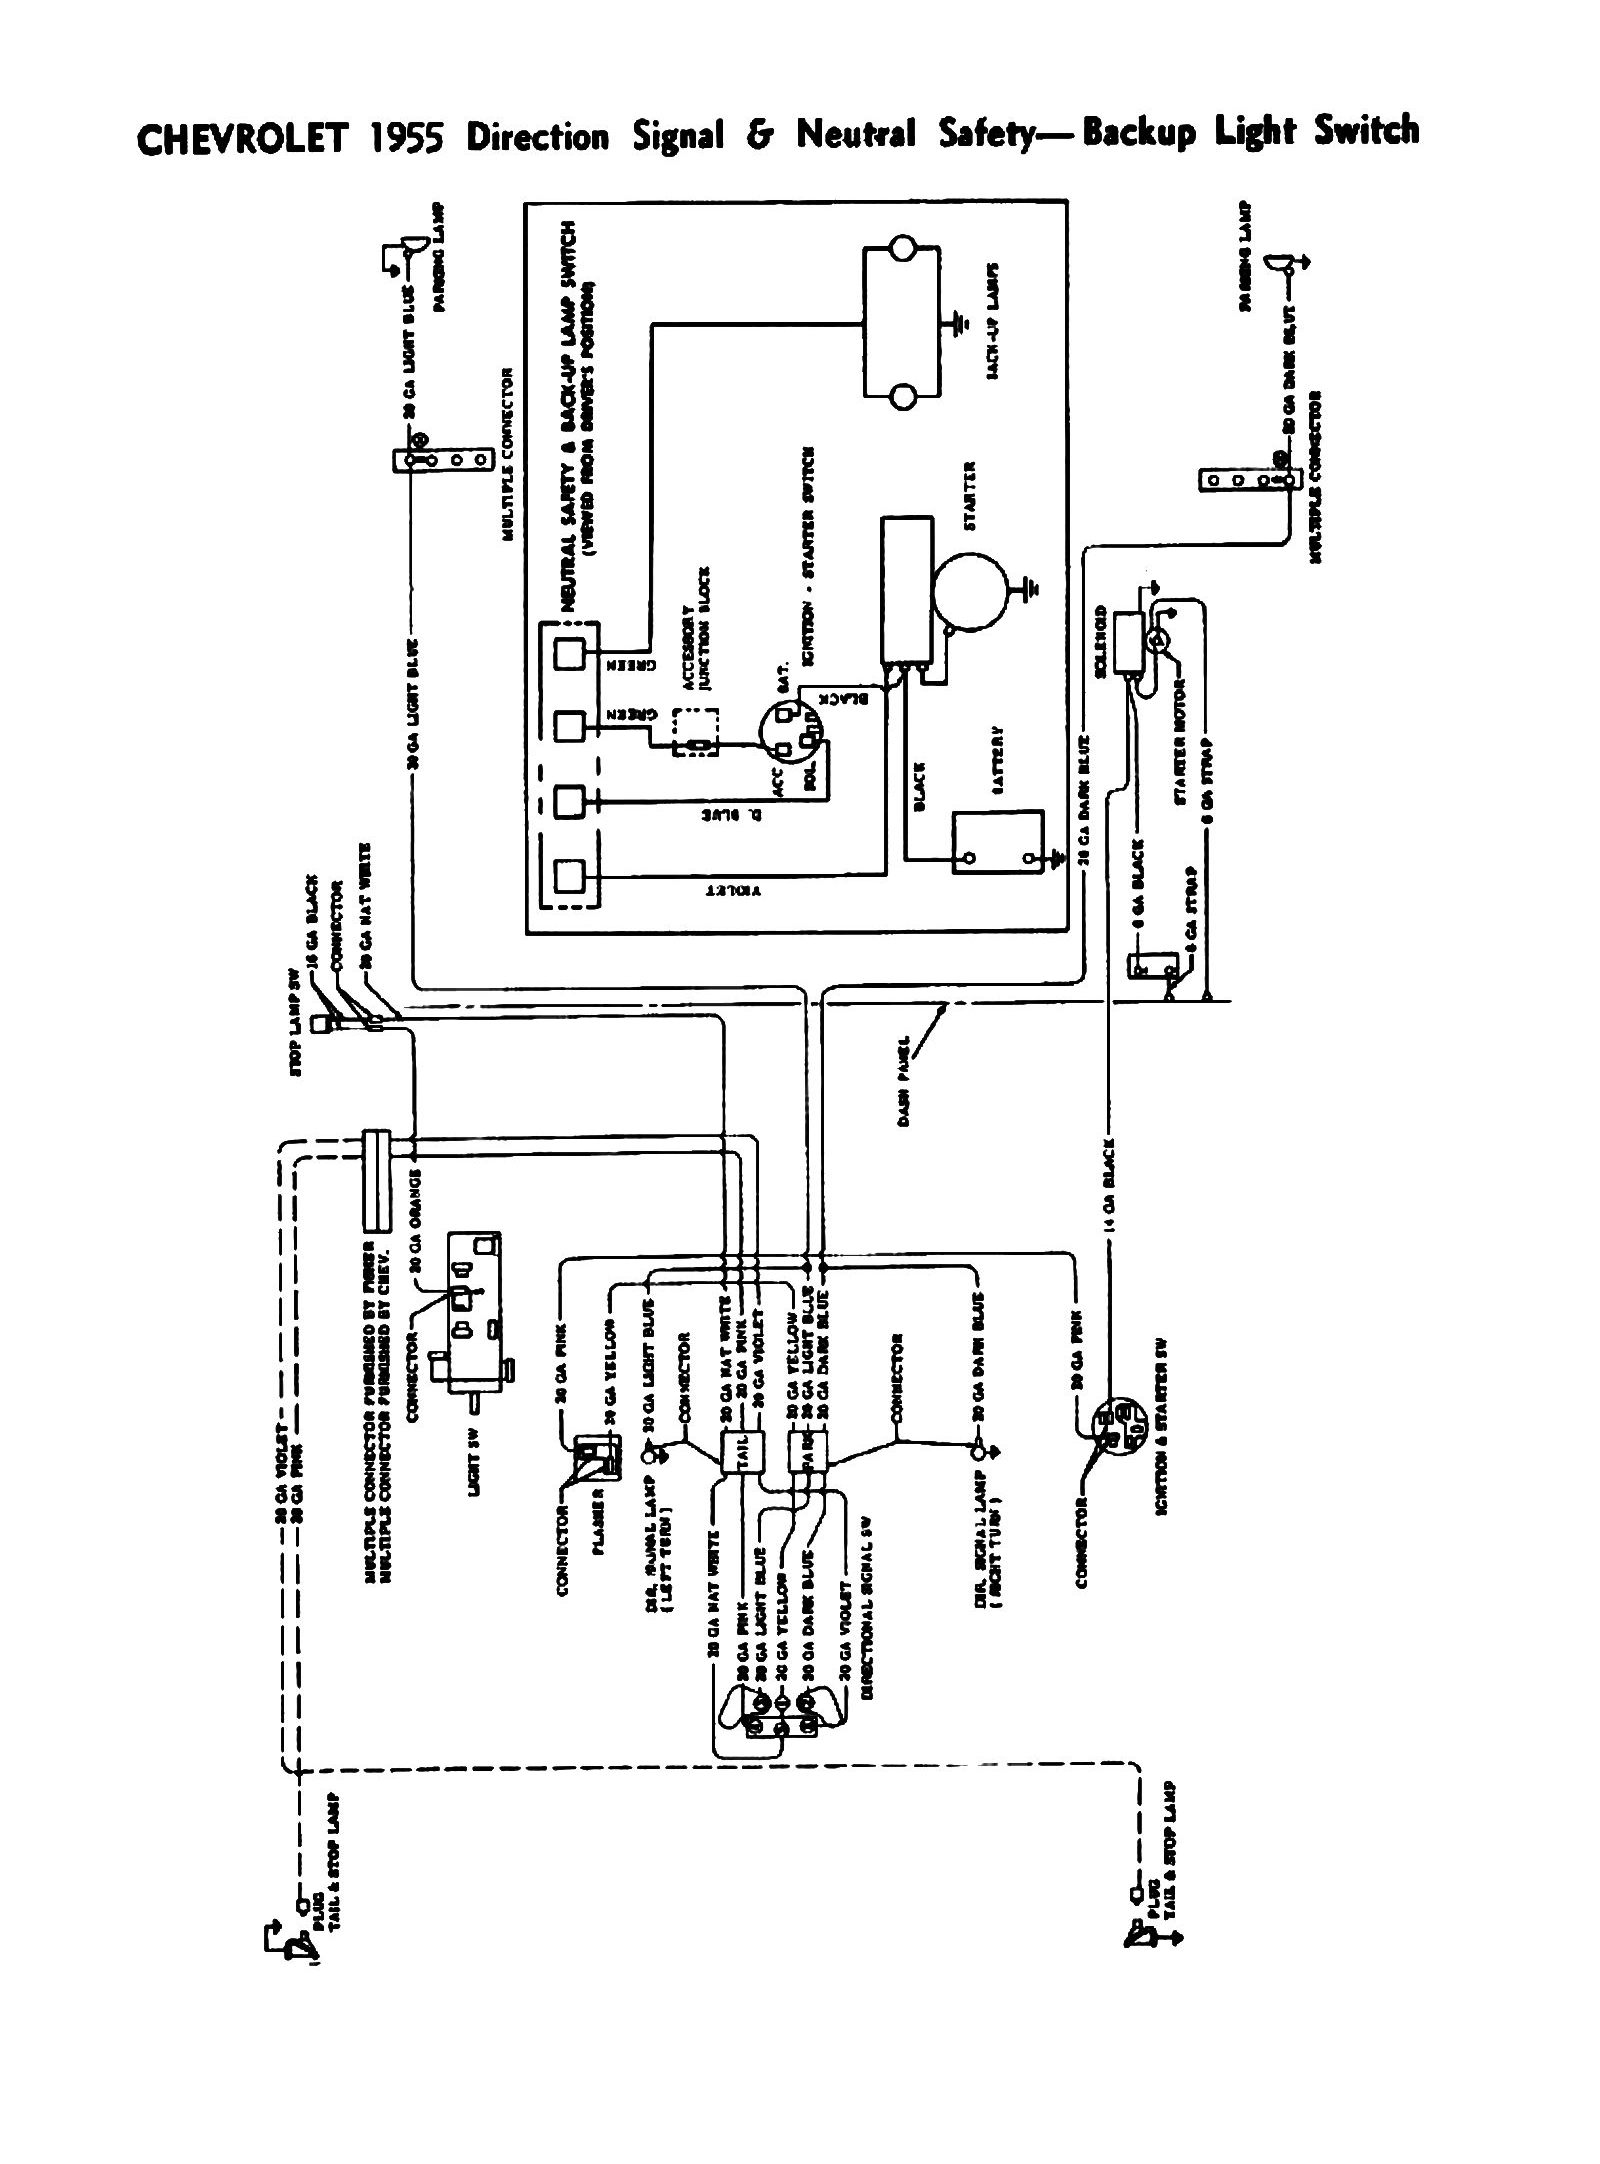 2001 53 gmc engine diagram - data wiring diagrams  lyme – make lymonade